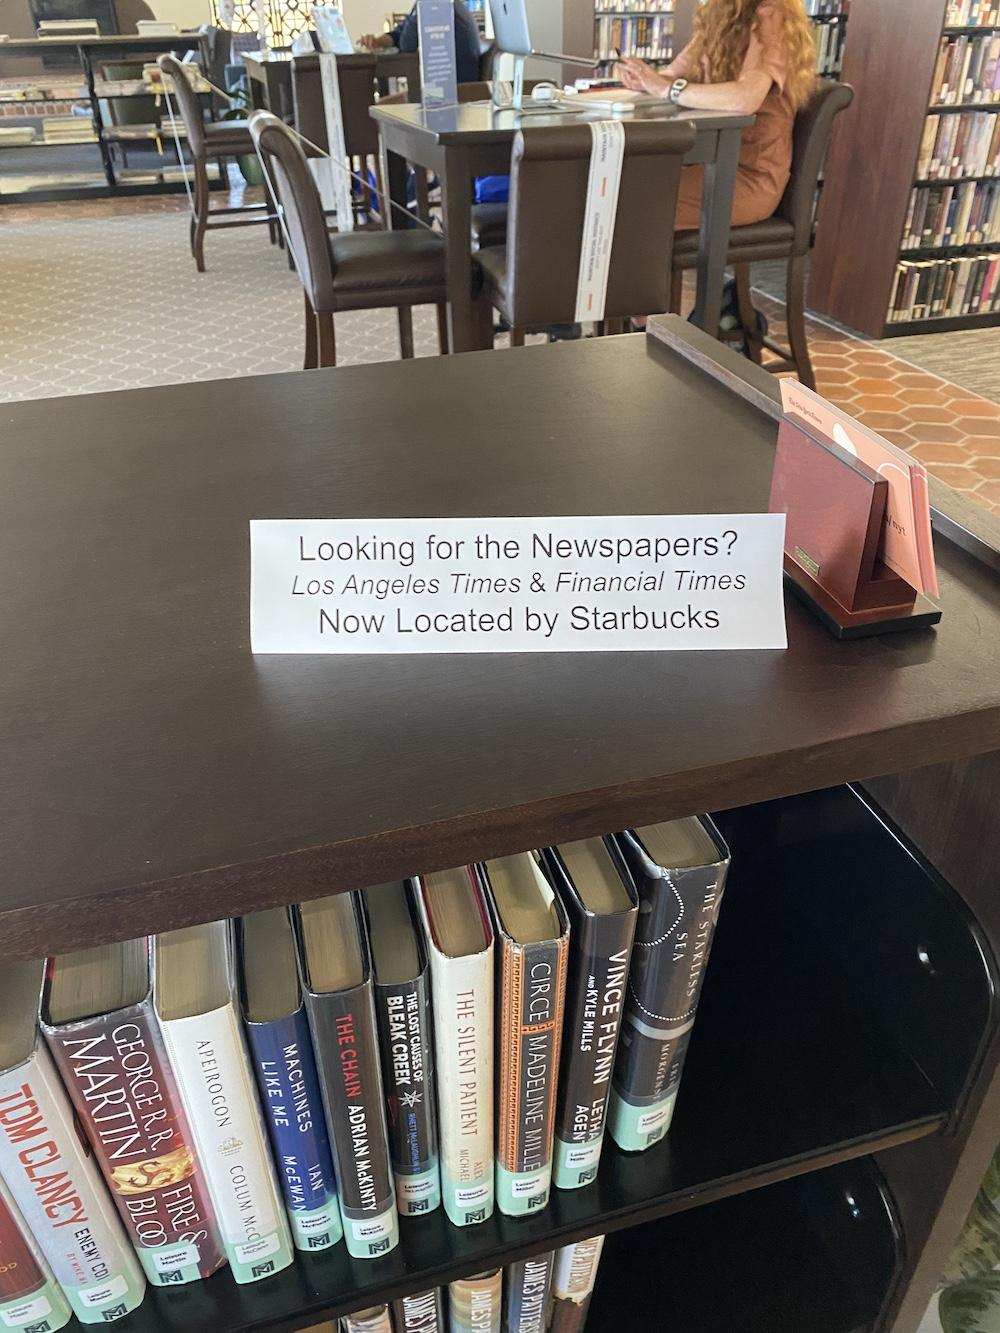 Pepperdine libraries are trying to both following regulations, and allow students to use the library efficiently March 15. Staff at the library have arranged the facility in ways that reduce crowding and encourage social distancing.